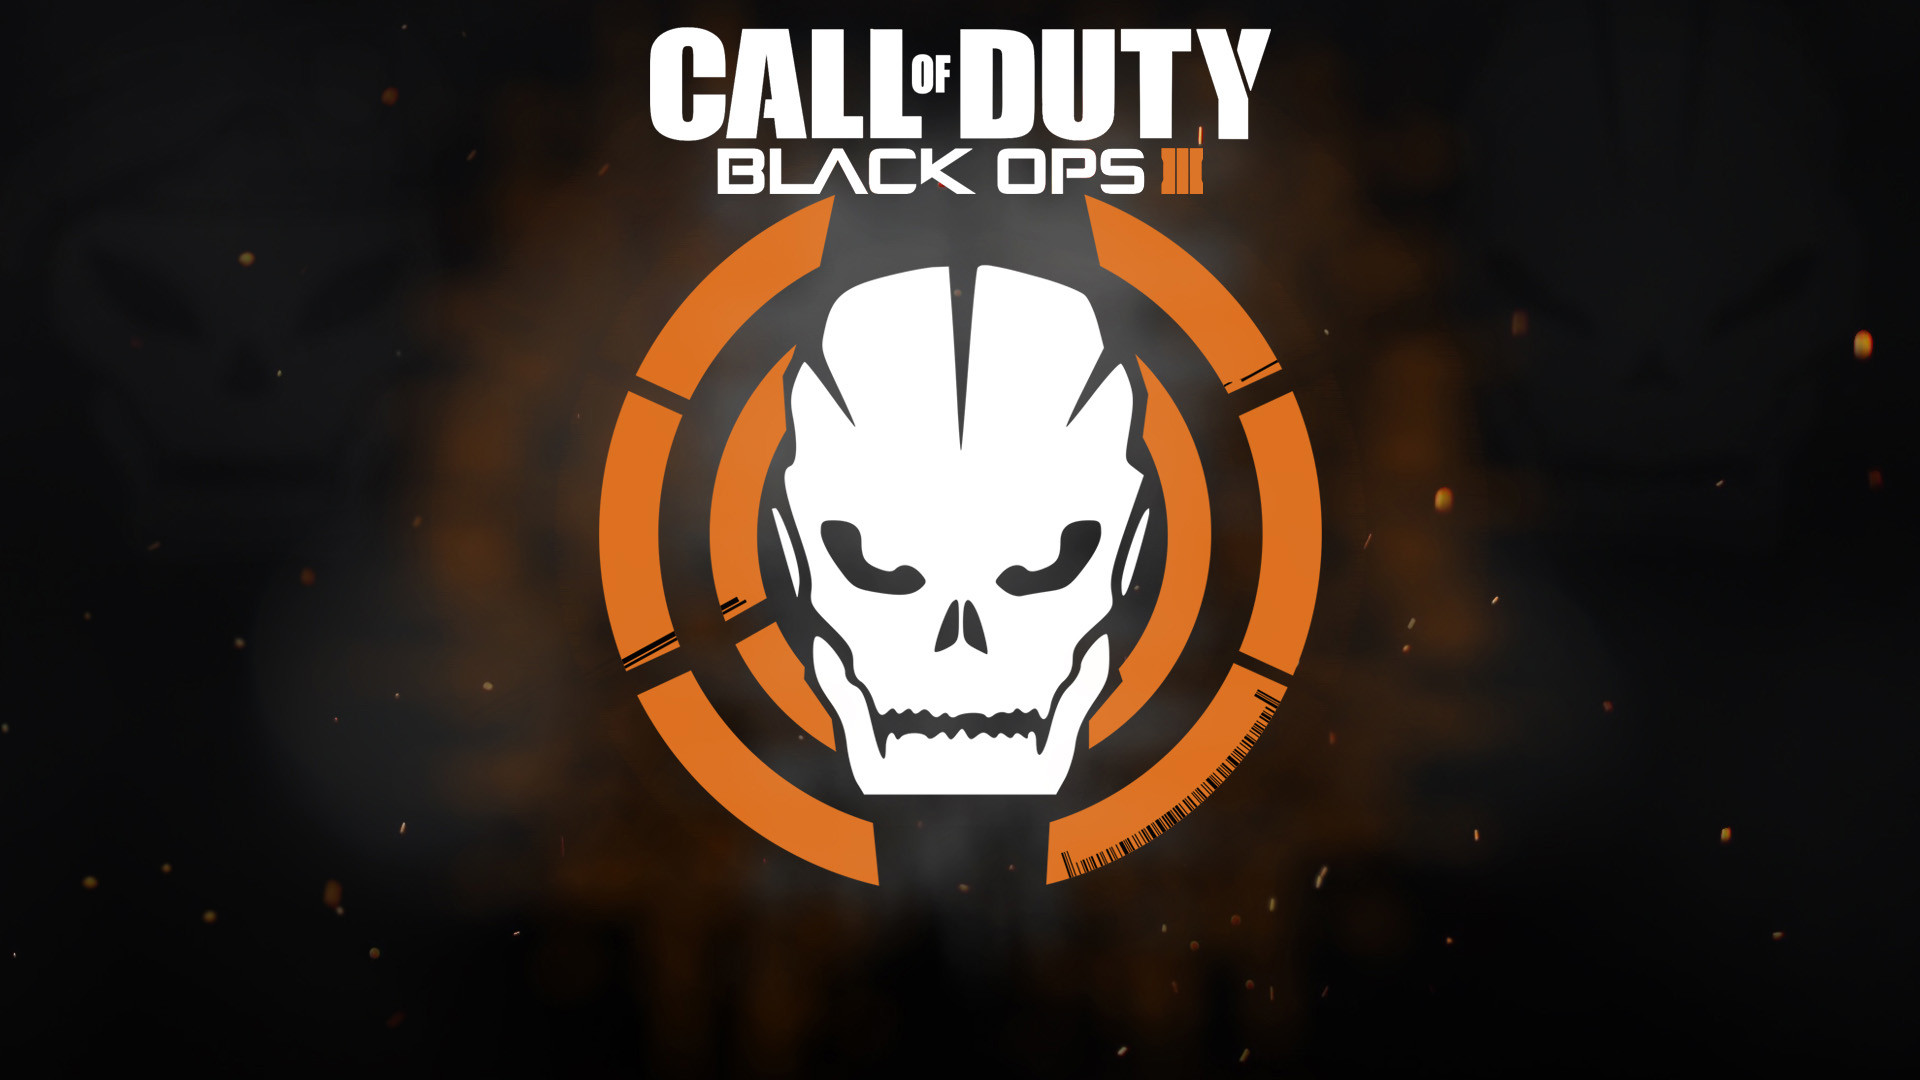 IPhone Call of duty Wallpapers HD, Desktop Backgrounds 1276×717 Black Ops  Backgrounds (